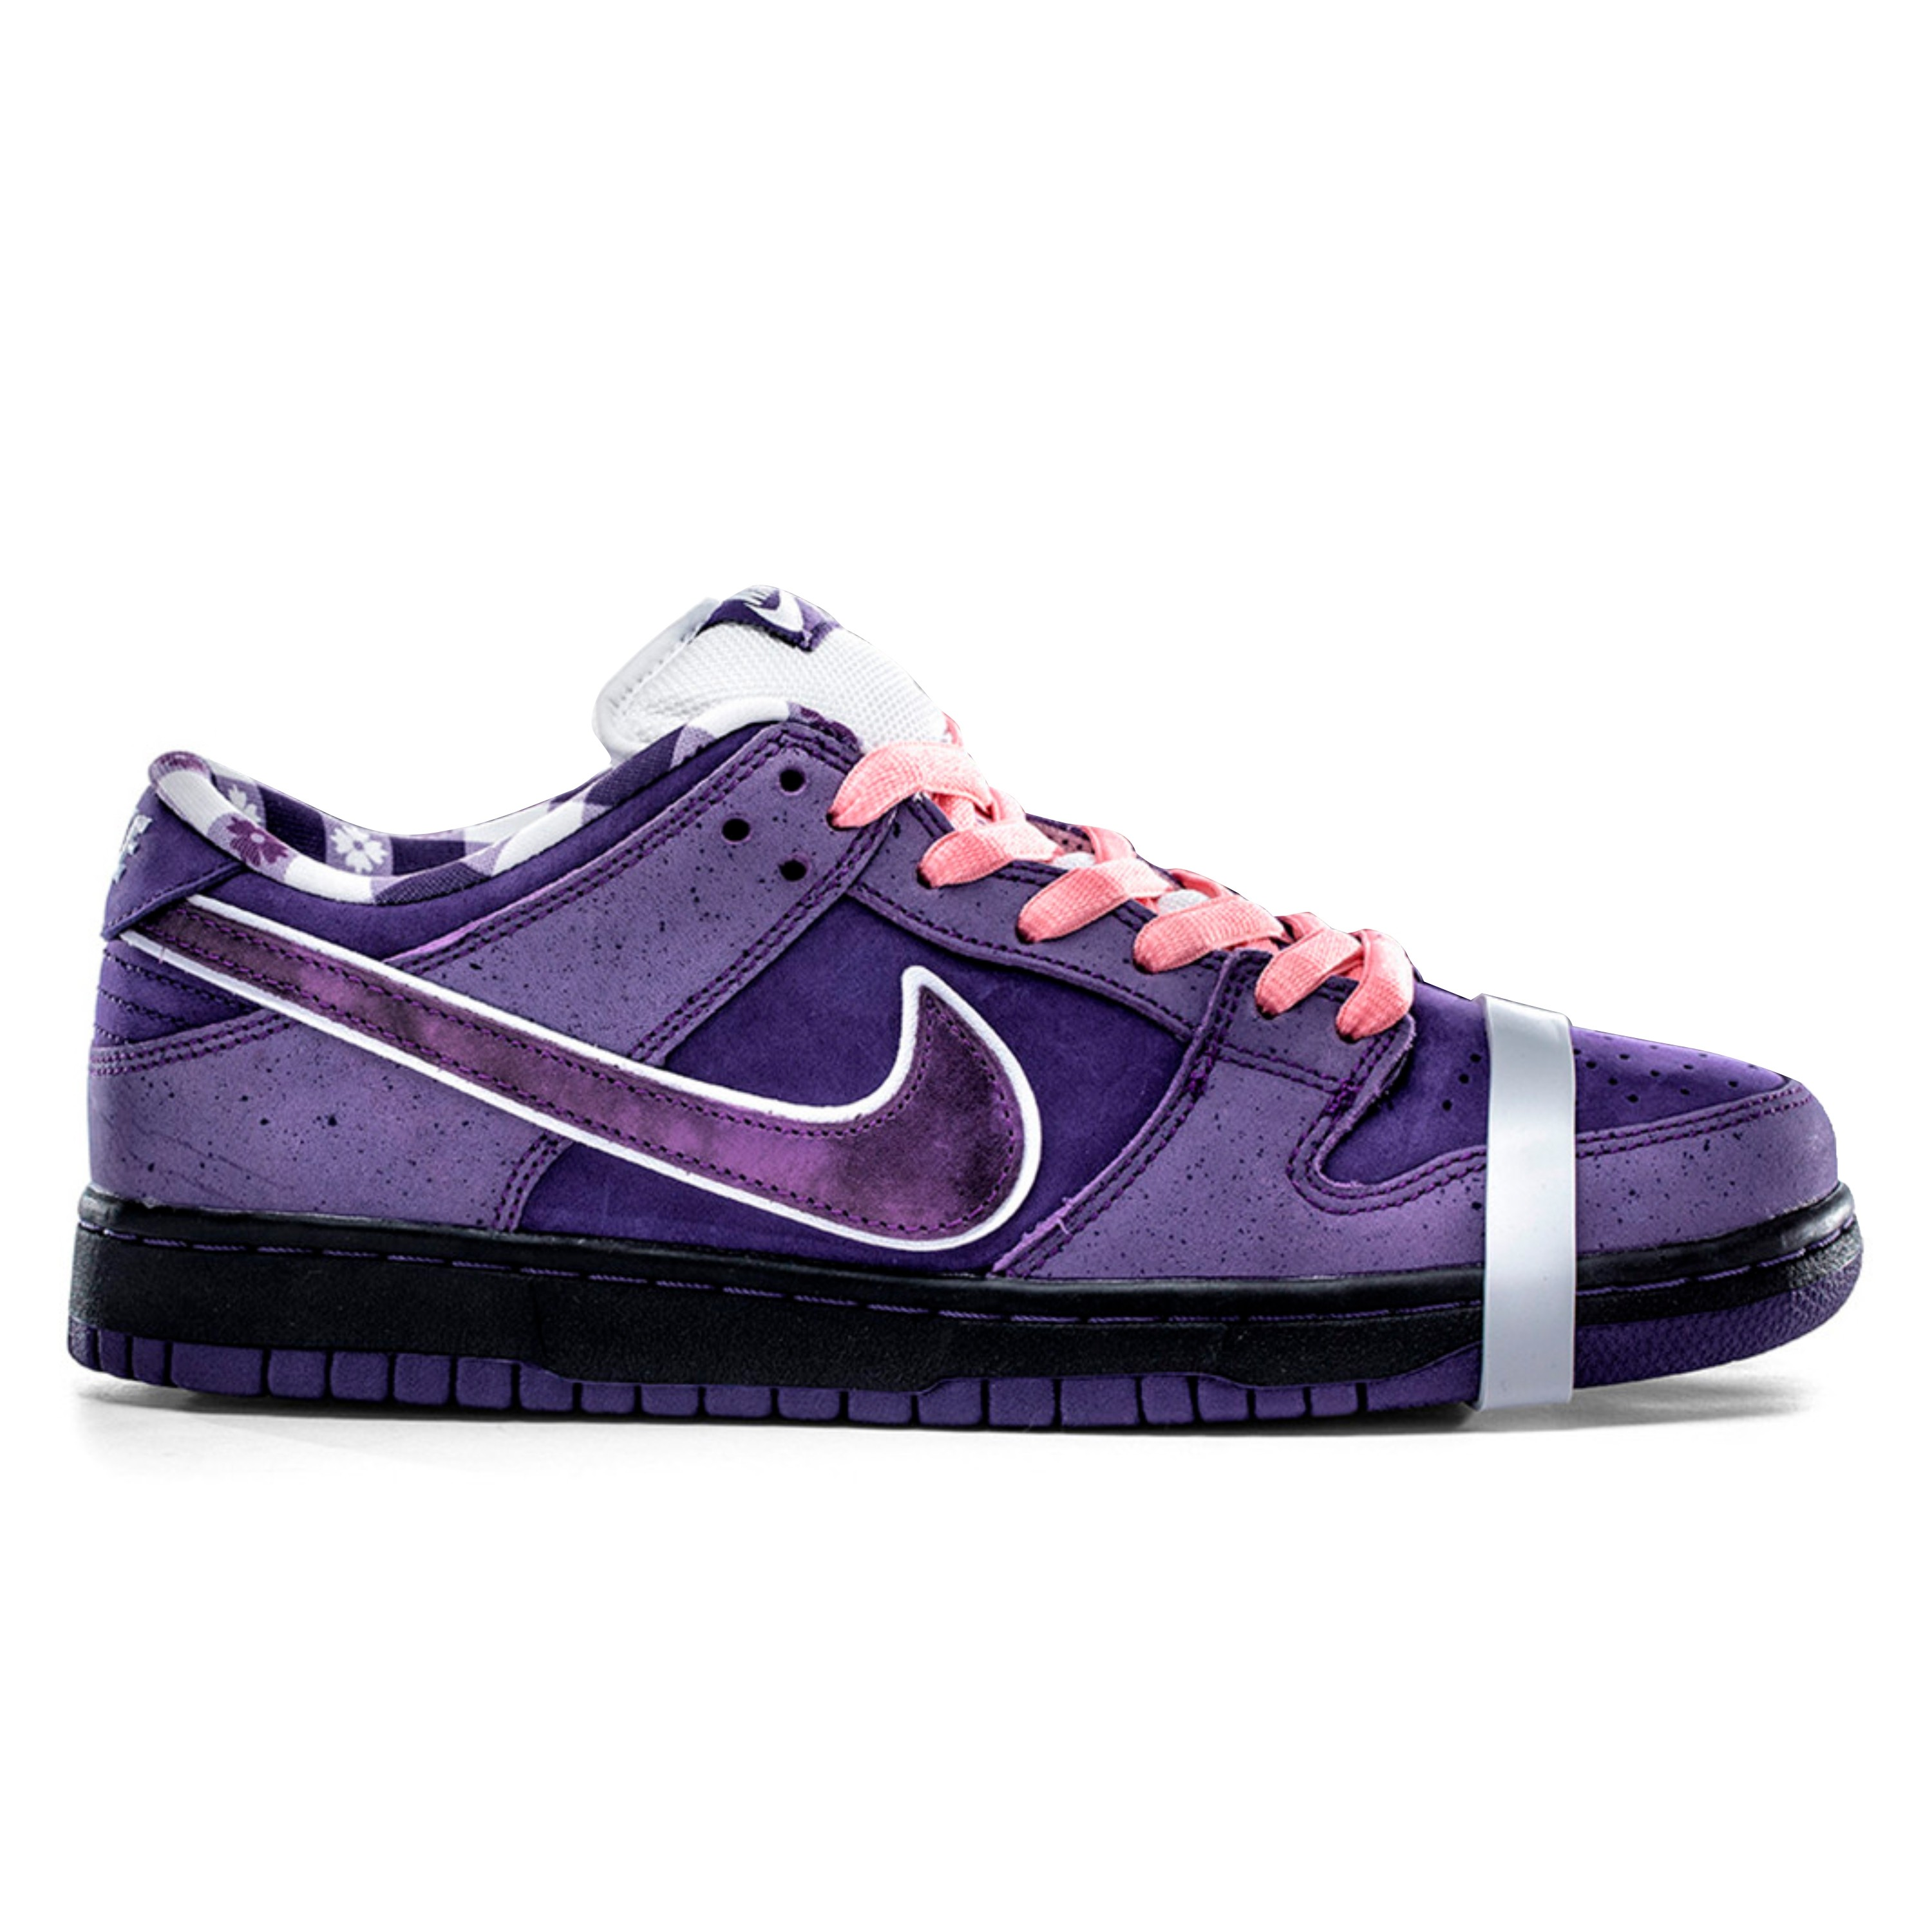 Nike SB x The Concepts Dunk Low Pro OG  Purple Lobster  QS (Voltage ... 24e23cf3f